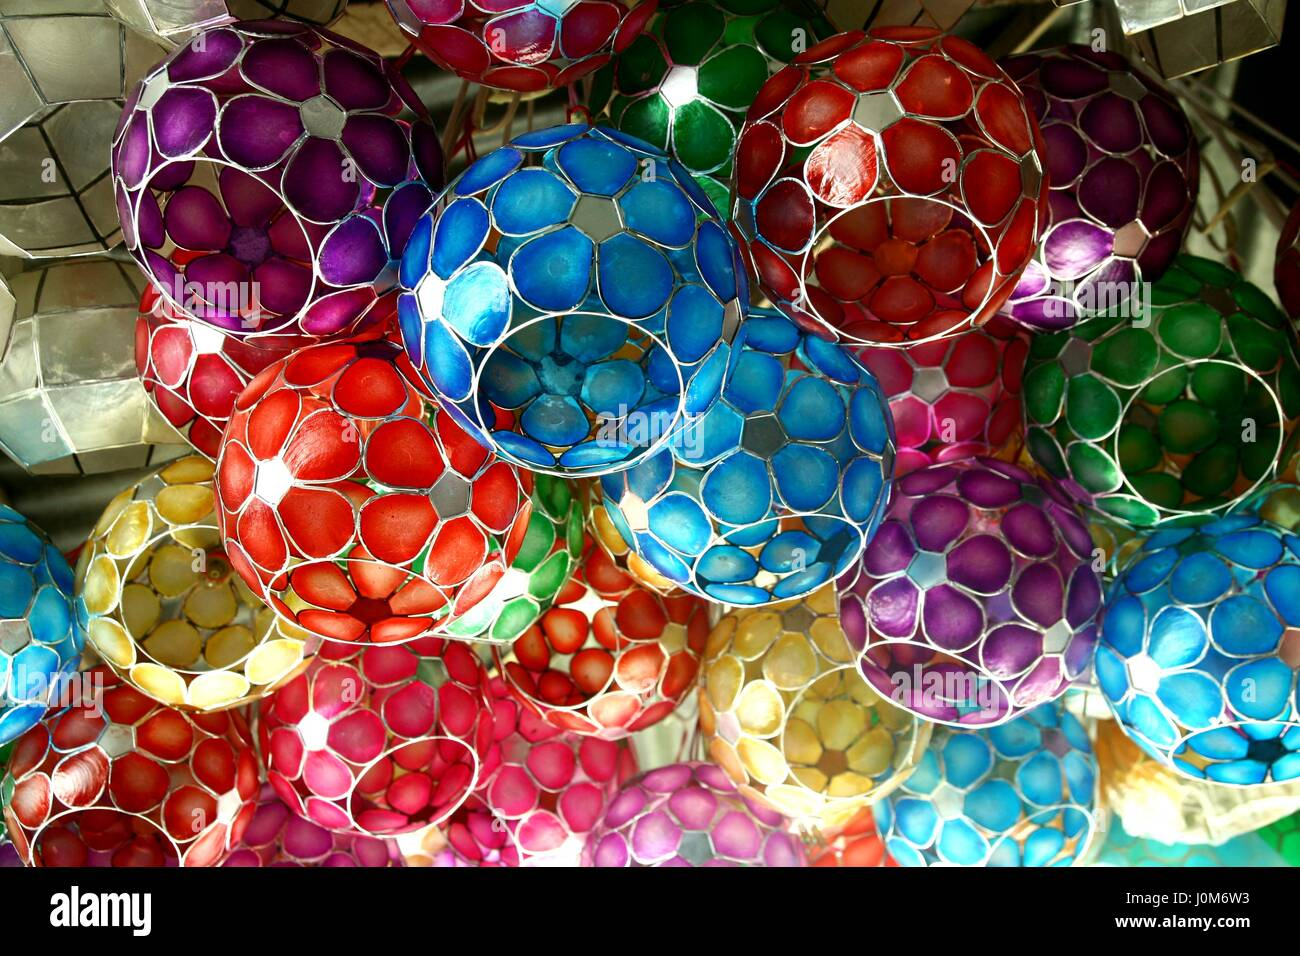 Colorful Capiz Shell Lamp Shades Sold At A Home Decor Store Stock Photo:  138127391   Alamy